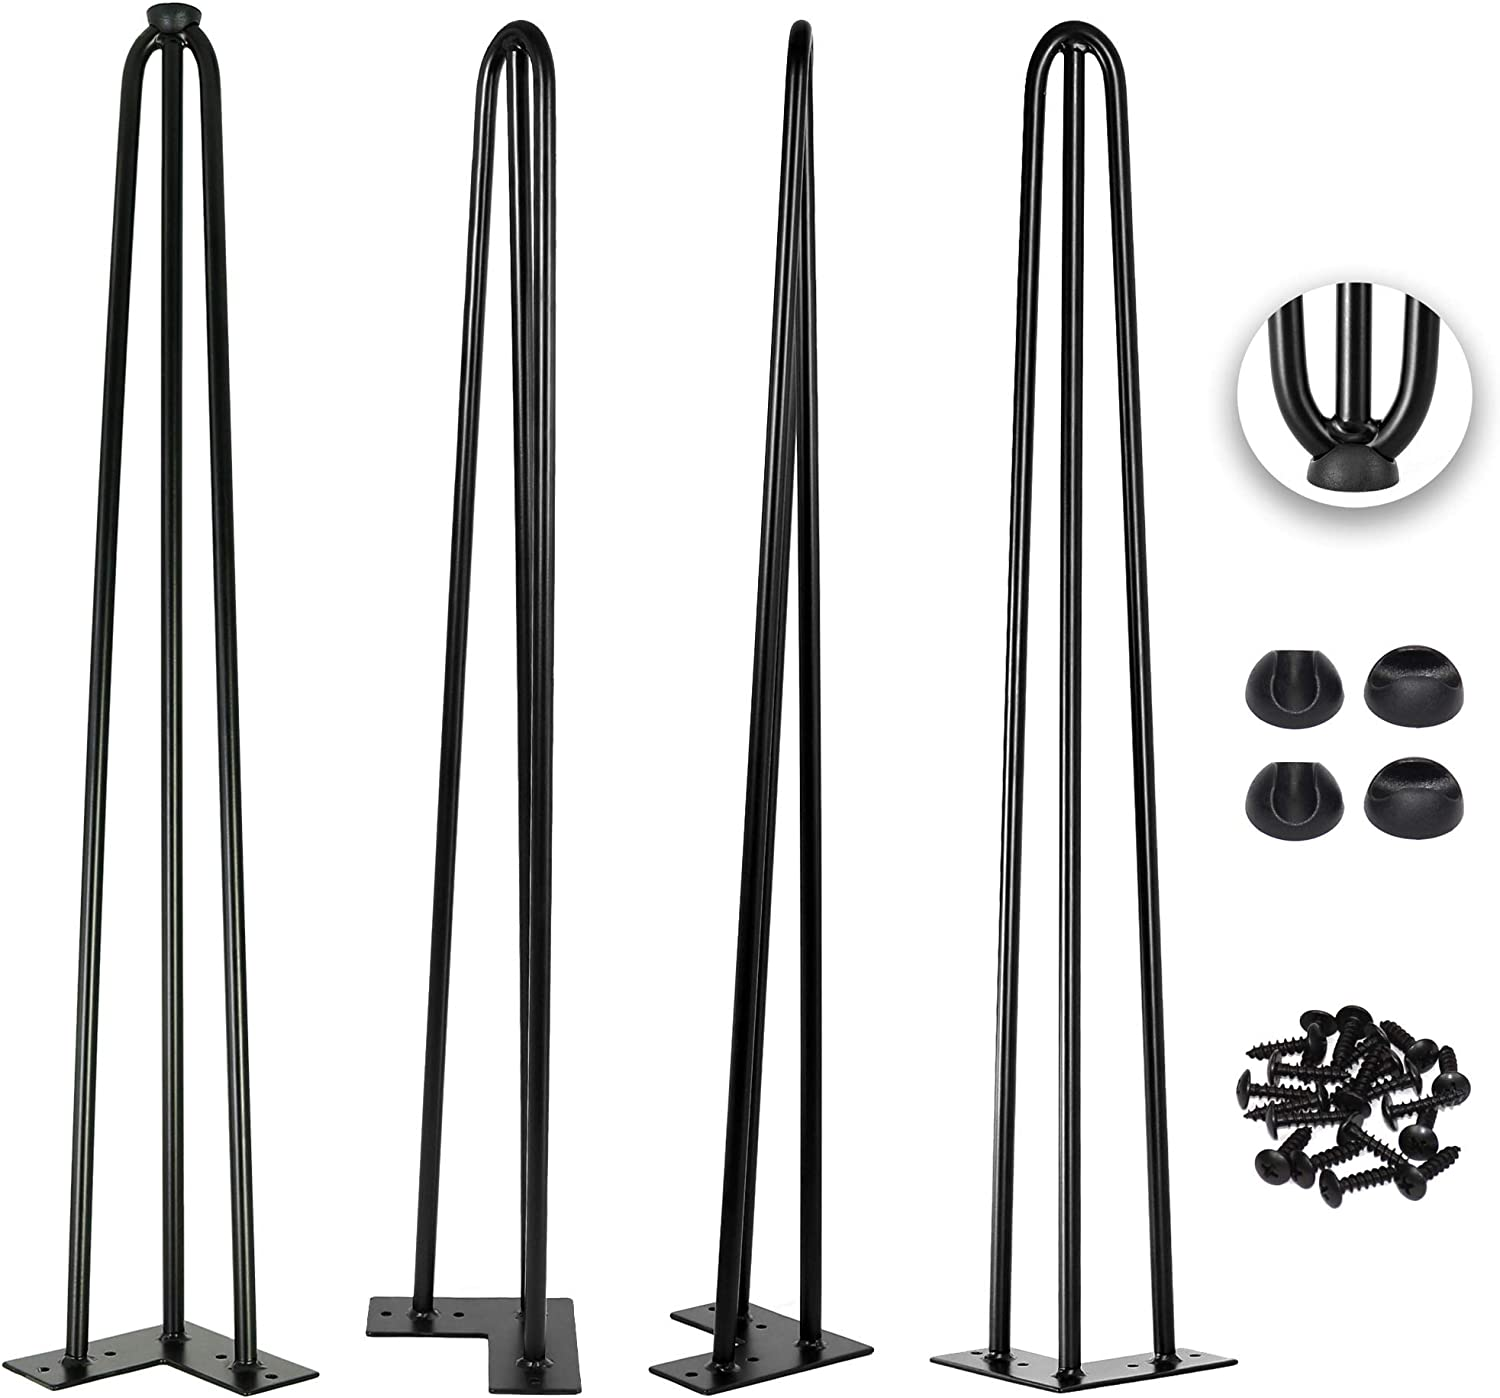 30 Inch Hairpin Legs 1/2 Inch Thick - Satin Black - Leg Protectors, Screws, Set of 4 – Easy to Install - Metal Legs - Desk Legs - Furniture Legs - Mid Century Modern by Homeland Hardware